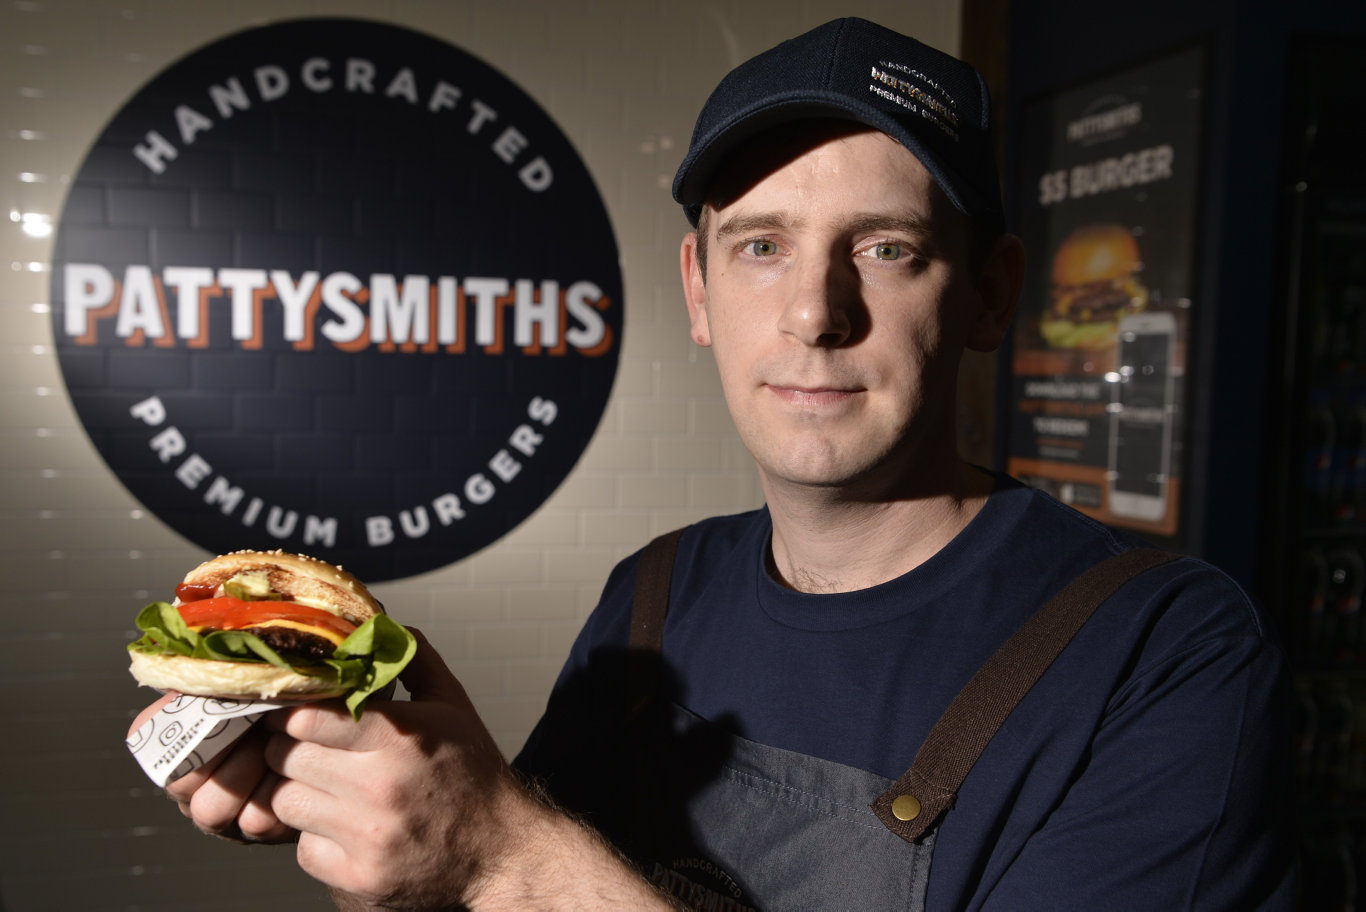 Pattysmiths owner Jason Lindfors in the newly opened store at Westridge Shopping Centre, Tuesday, May 28, 2019.